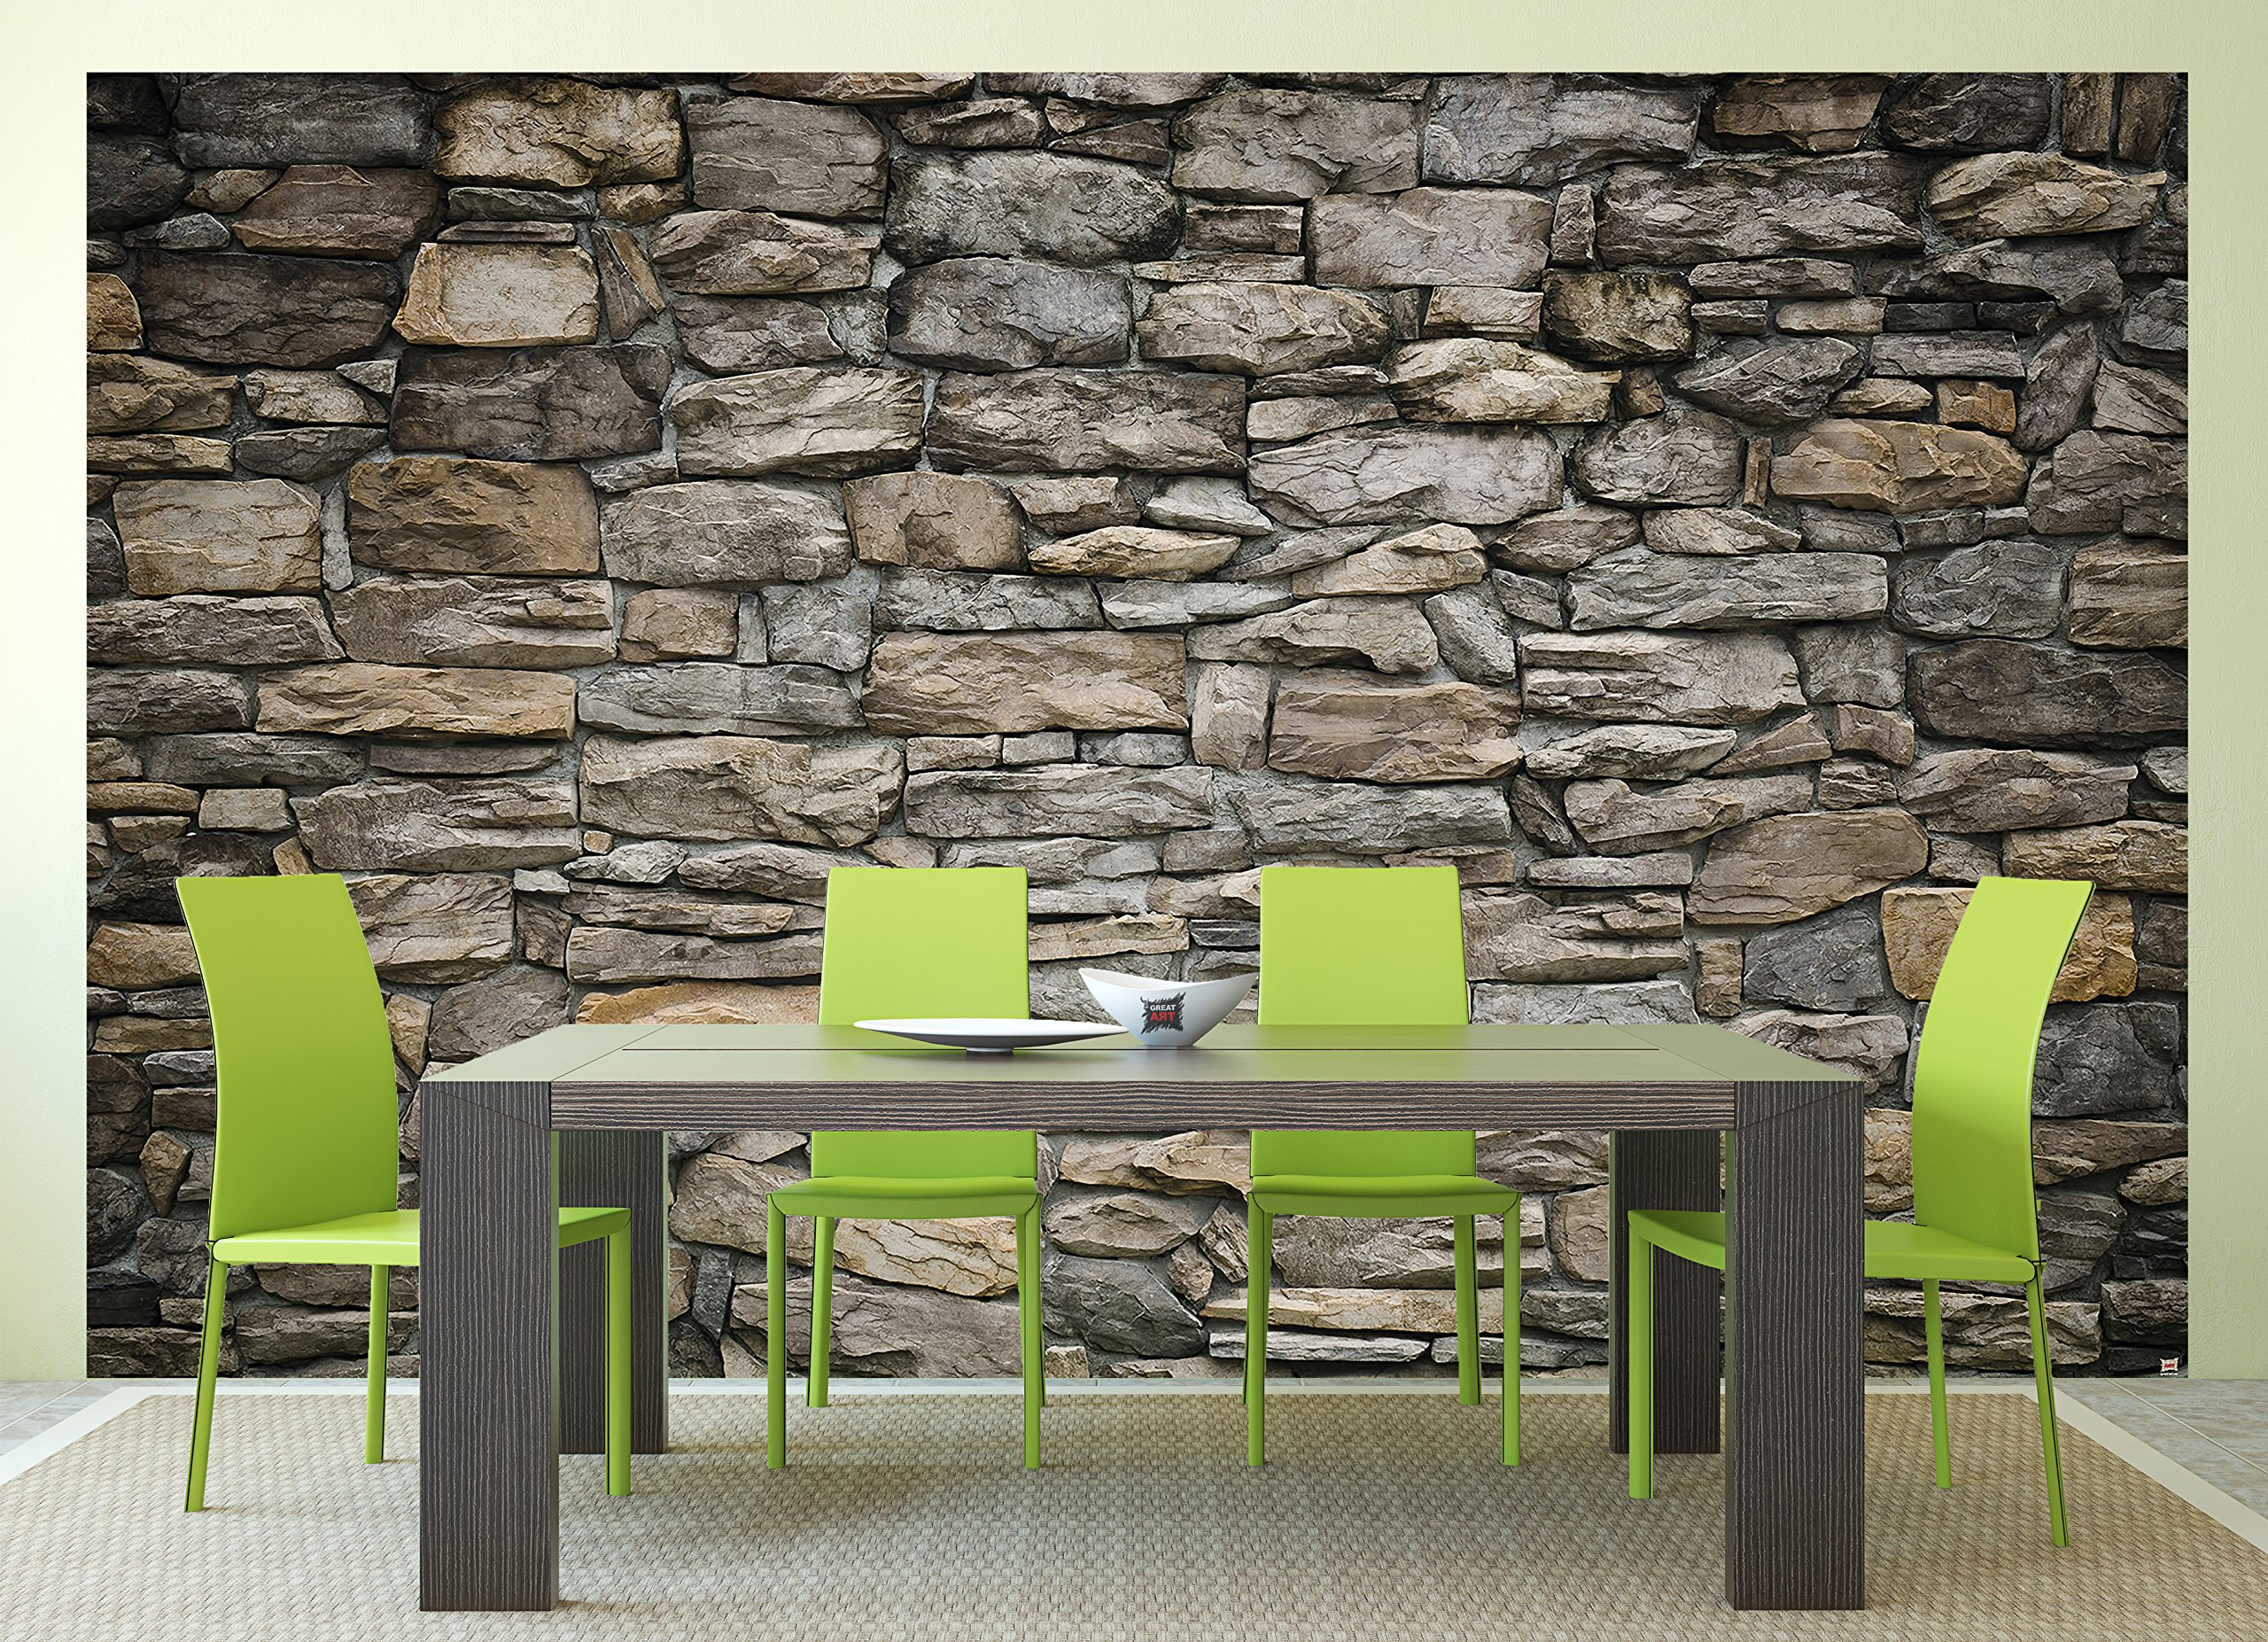 GREAT ART Wall Mural - Grey Stonewal - Wall Decoration Stones Poster Rock 3D Optic Stone Pattern Slate Industrial Design Wallpaper (132.3 Inch x 93.7 Inch / 336 x 238 Centimeter) by Great Art